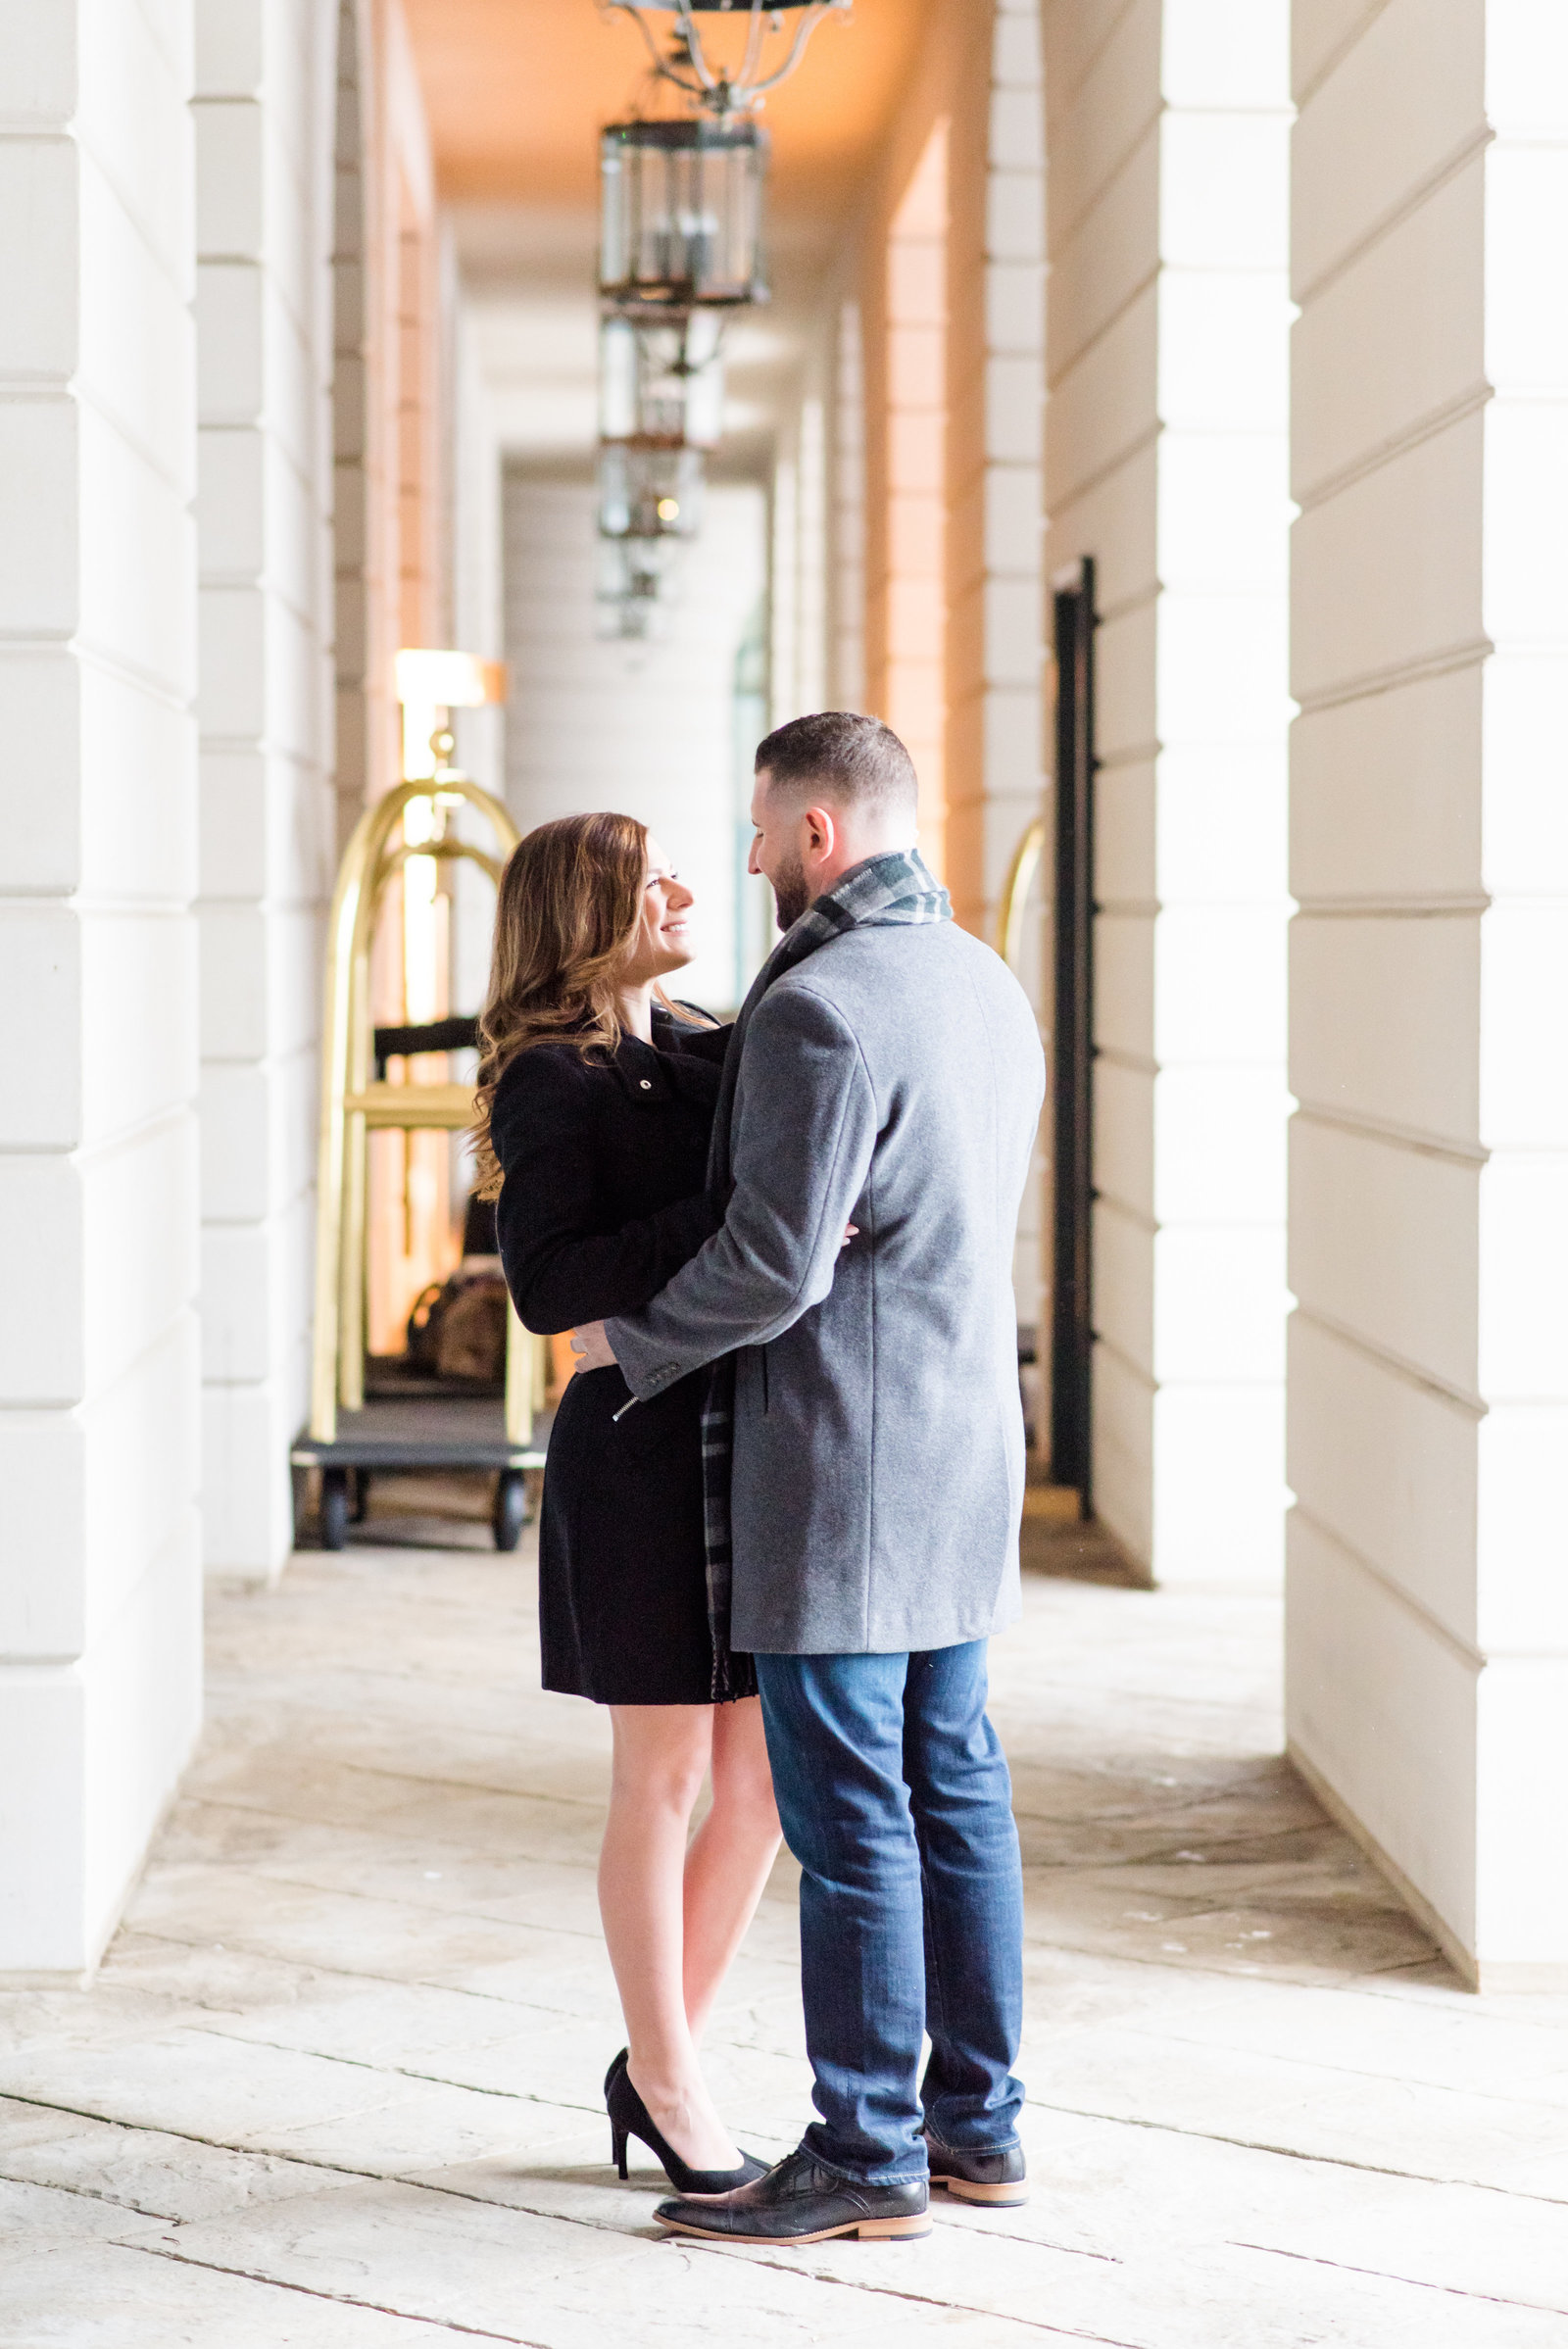 carmen-may-photography-nemacolin-engagement-josh-carlie-110